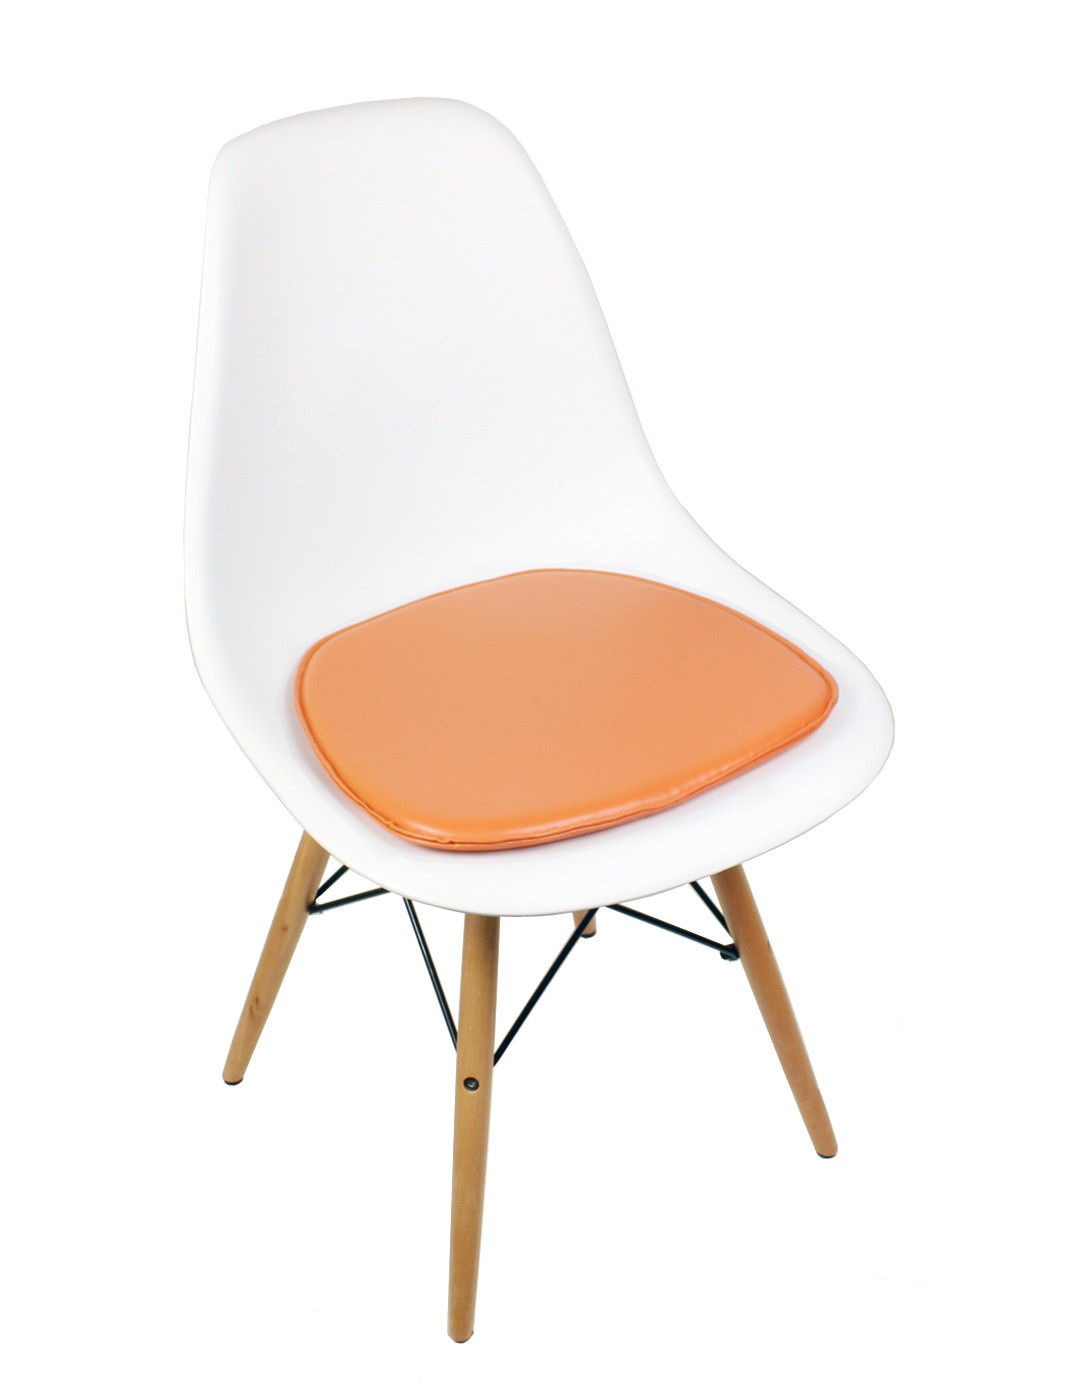 100 Eames Chair Cost Eames Style Dsw Light Gray  : eames dsw white orange cushion 1p1 from 45.76.66.238 size 1068 x 1397 jpeg 68kB